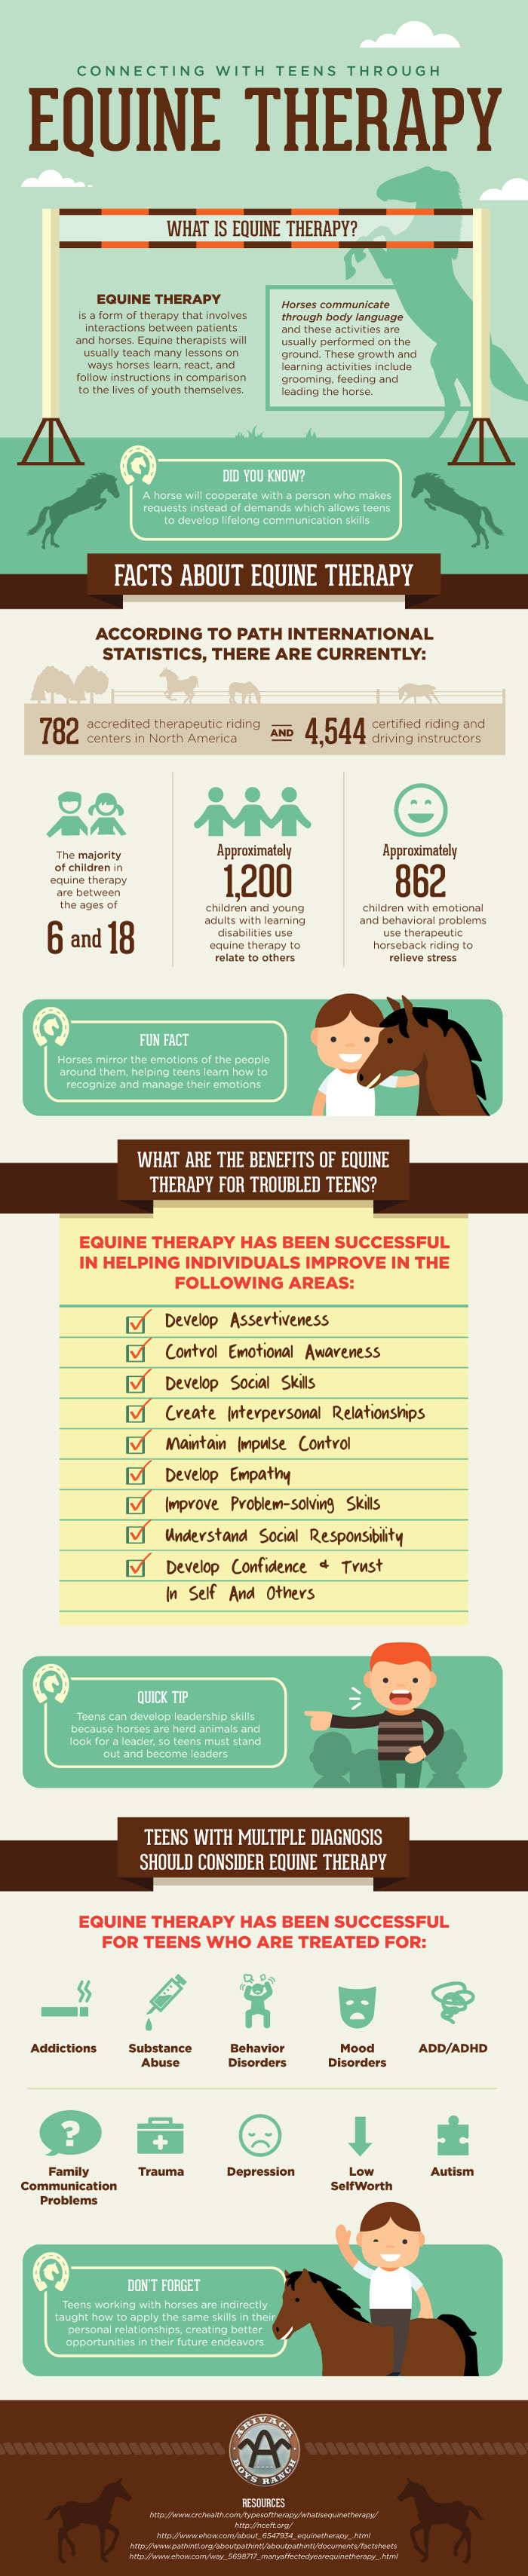 Connecting With Teens Through Equine Therapy